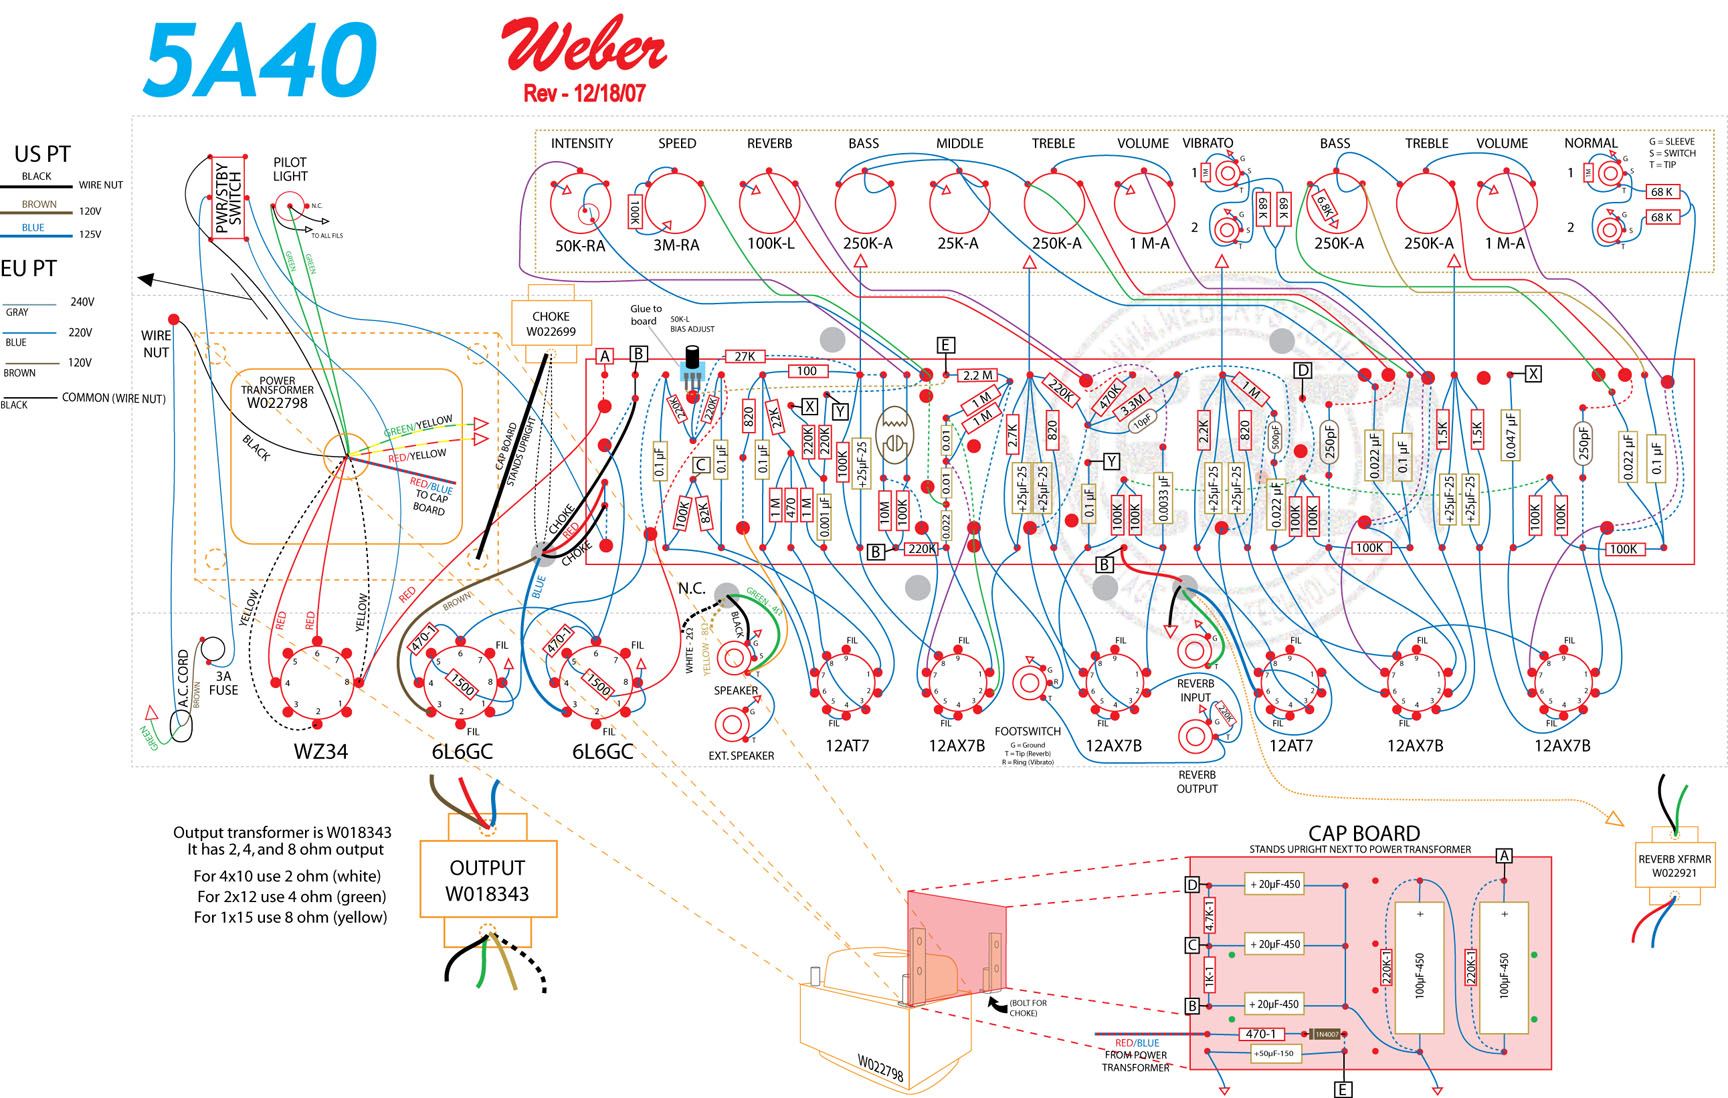 deluxe reverb schematic related keywords suggestions deluxe 5a40 • bom • layout • schematic